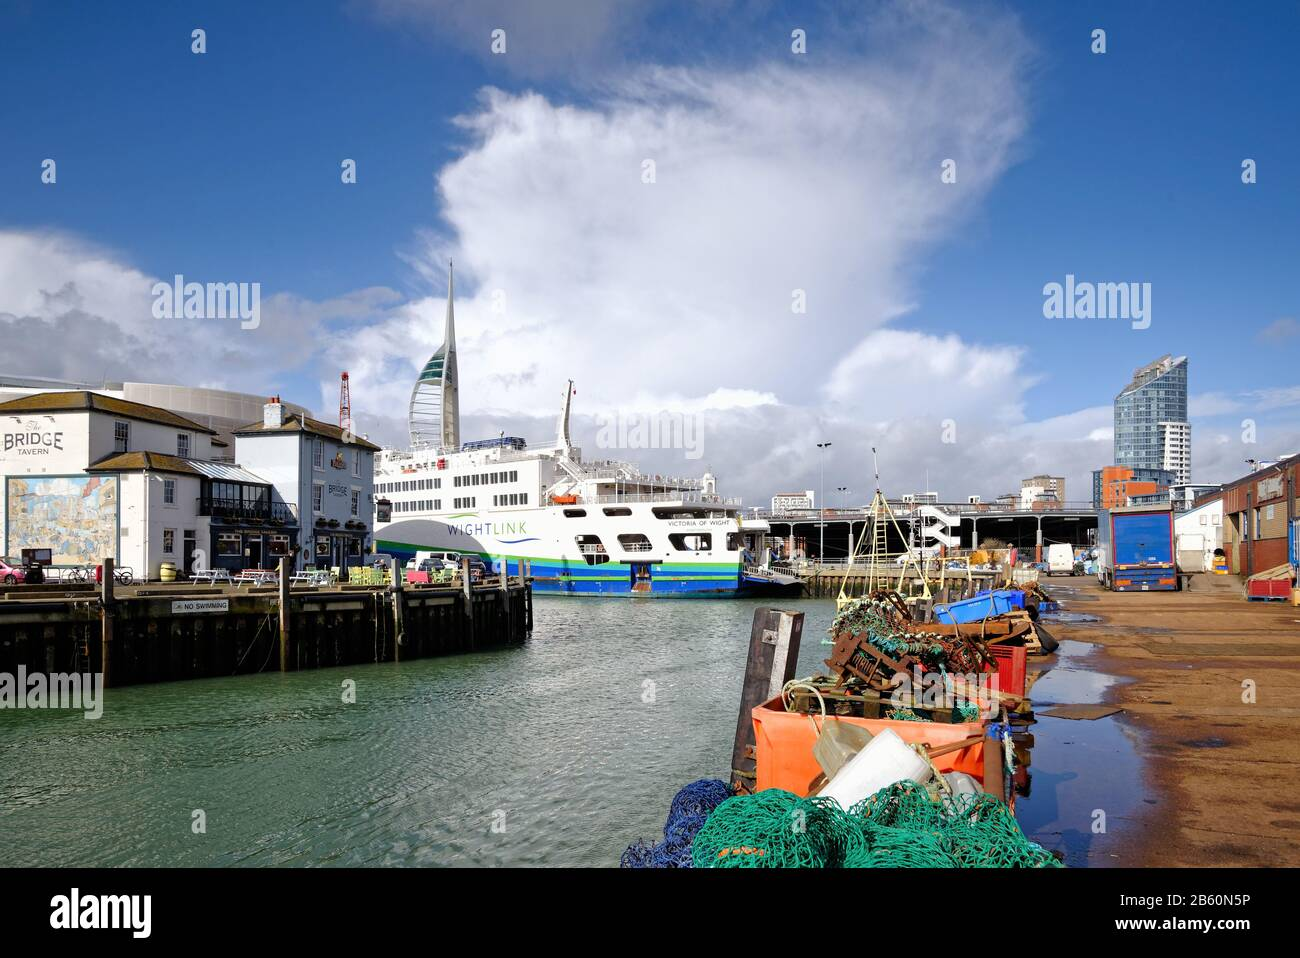 The historic Camber harbour in old Portsmouth with two Wightlink car ferries at their moorings, Portsmouth Hampshire England UK Stock Photo